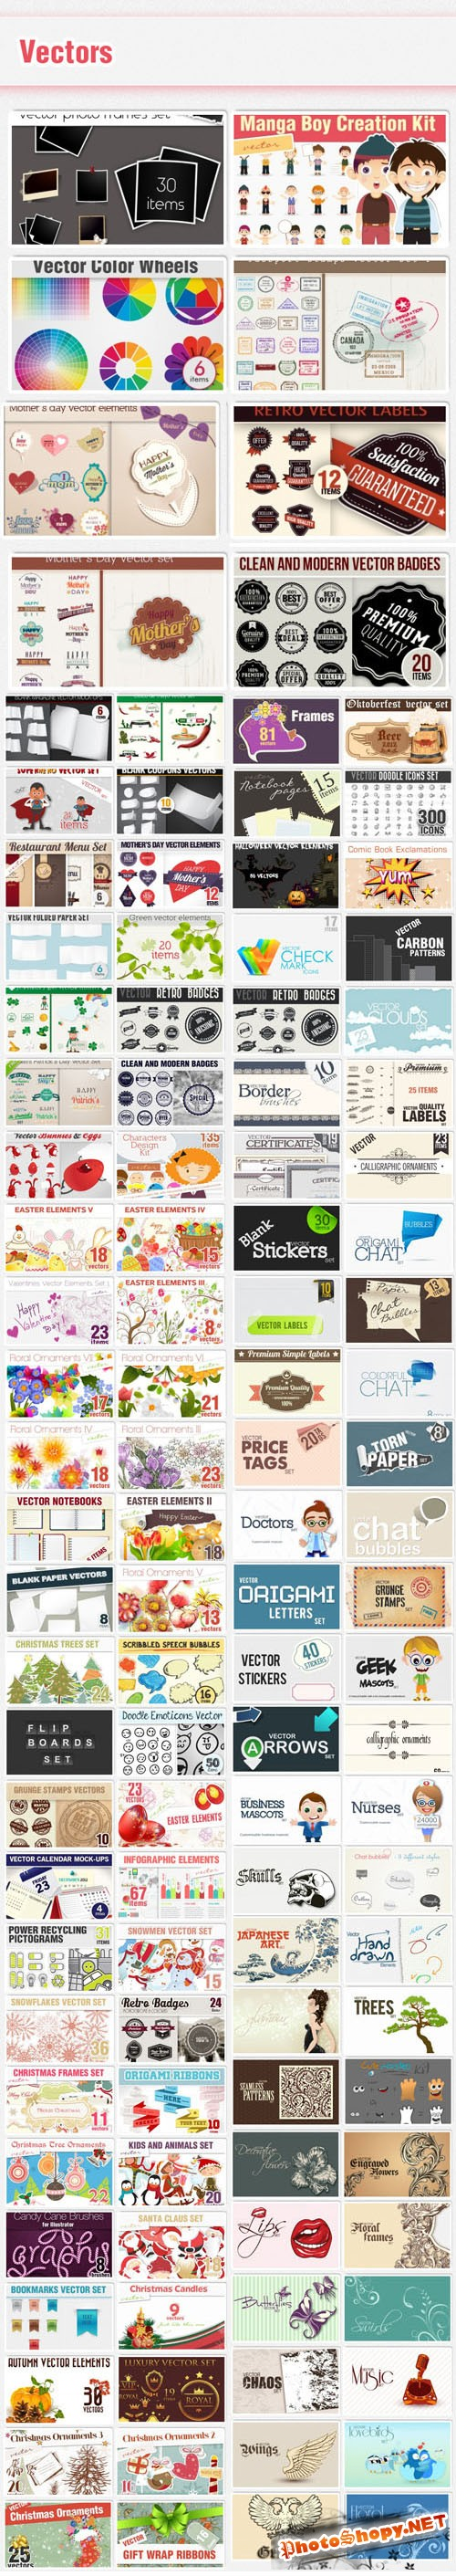 114 Premium Vector Sets from DesignTNT